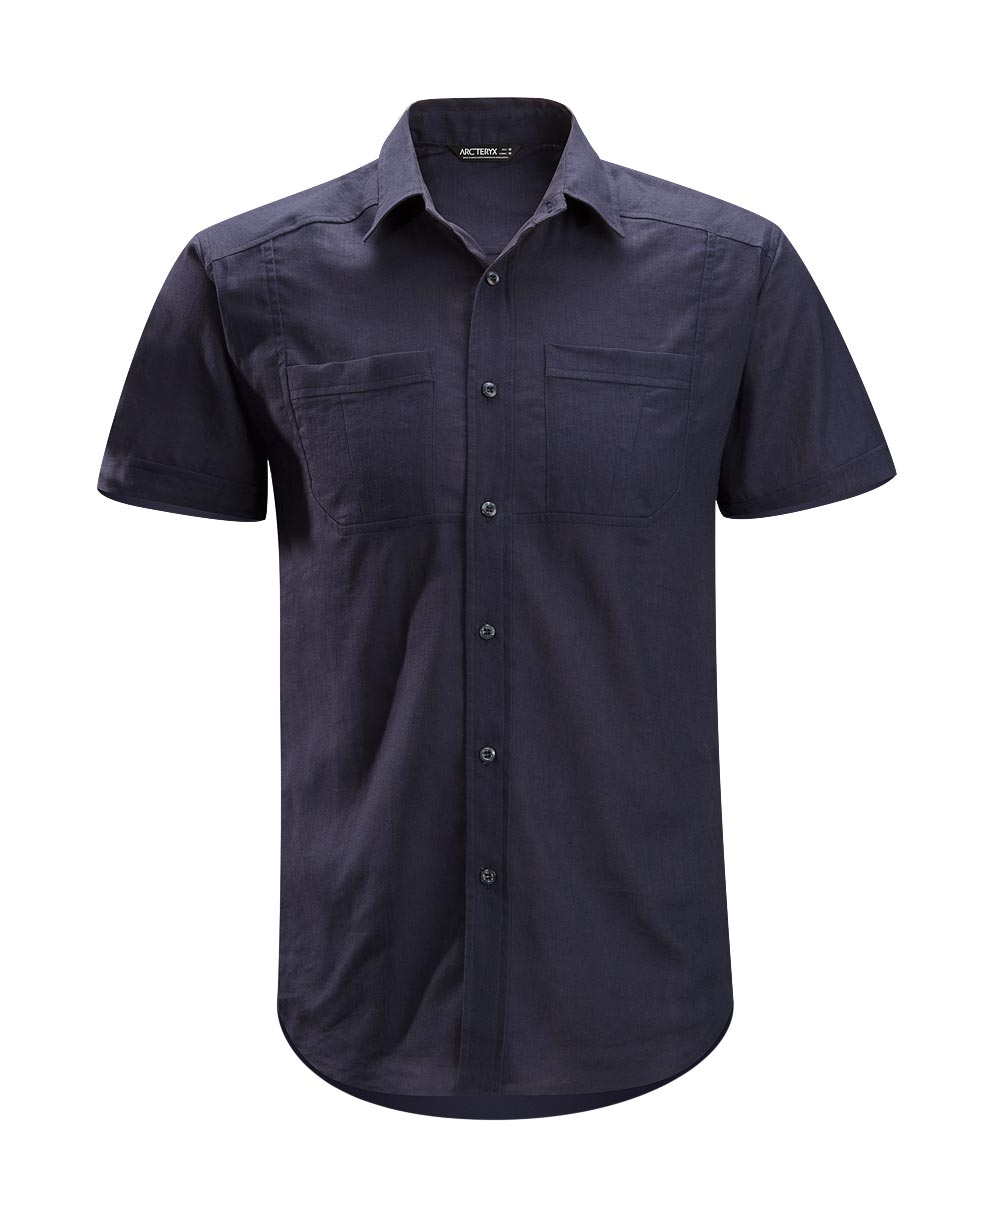 Arcteryx Blue Kyanite Ravelin Shirt SS - New